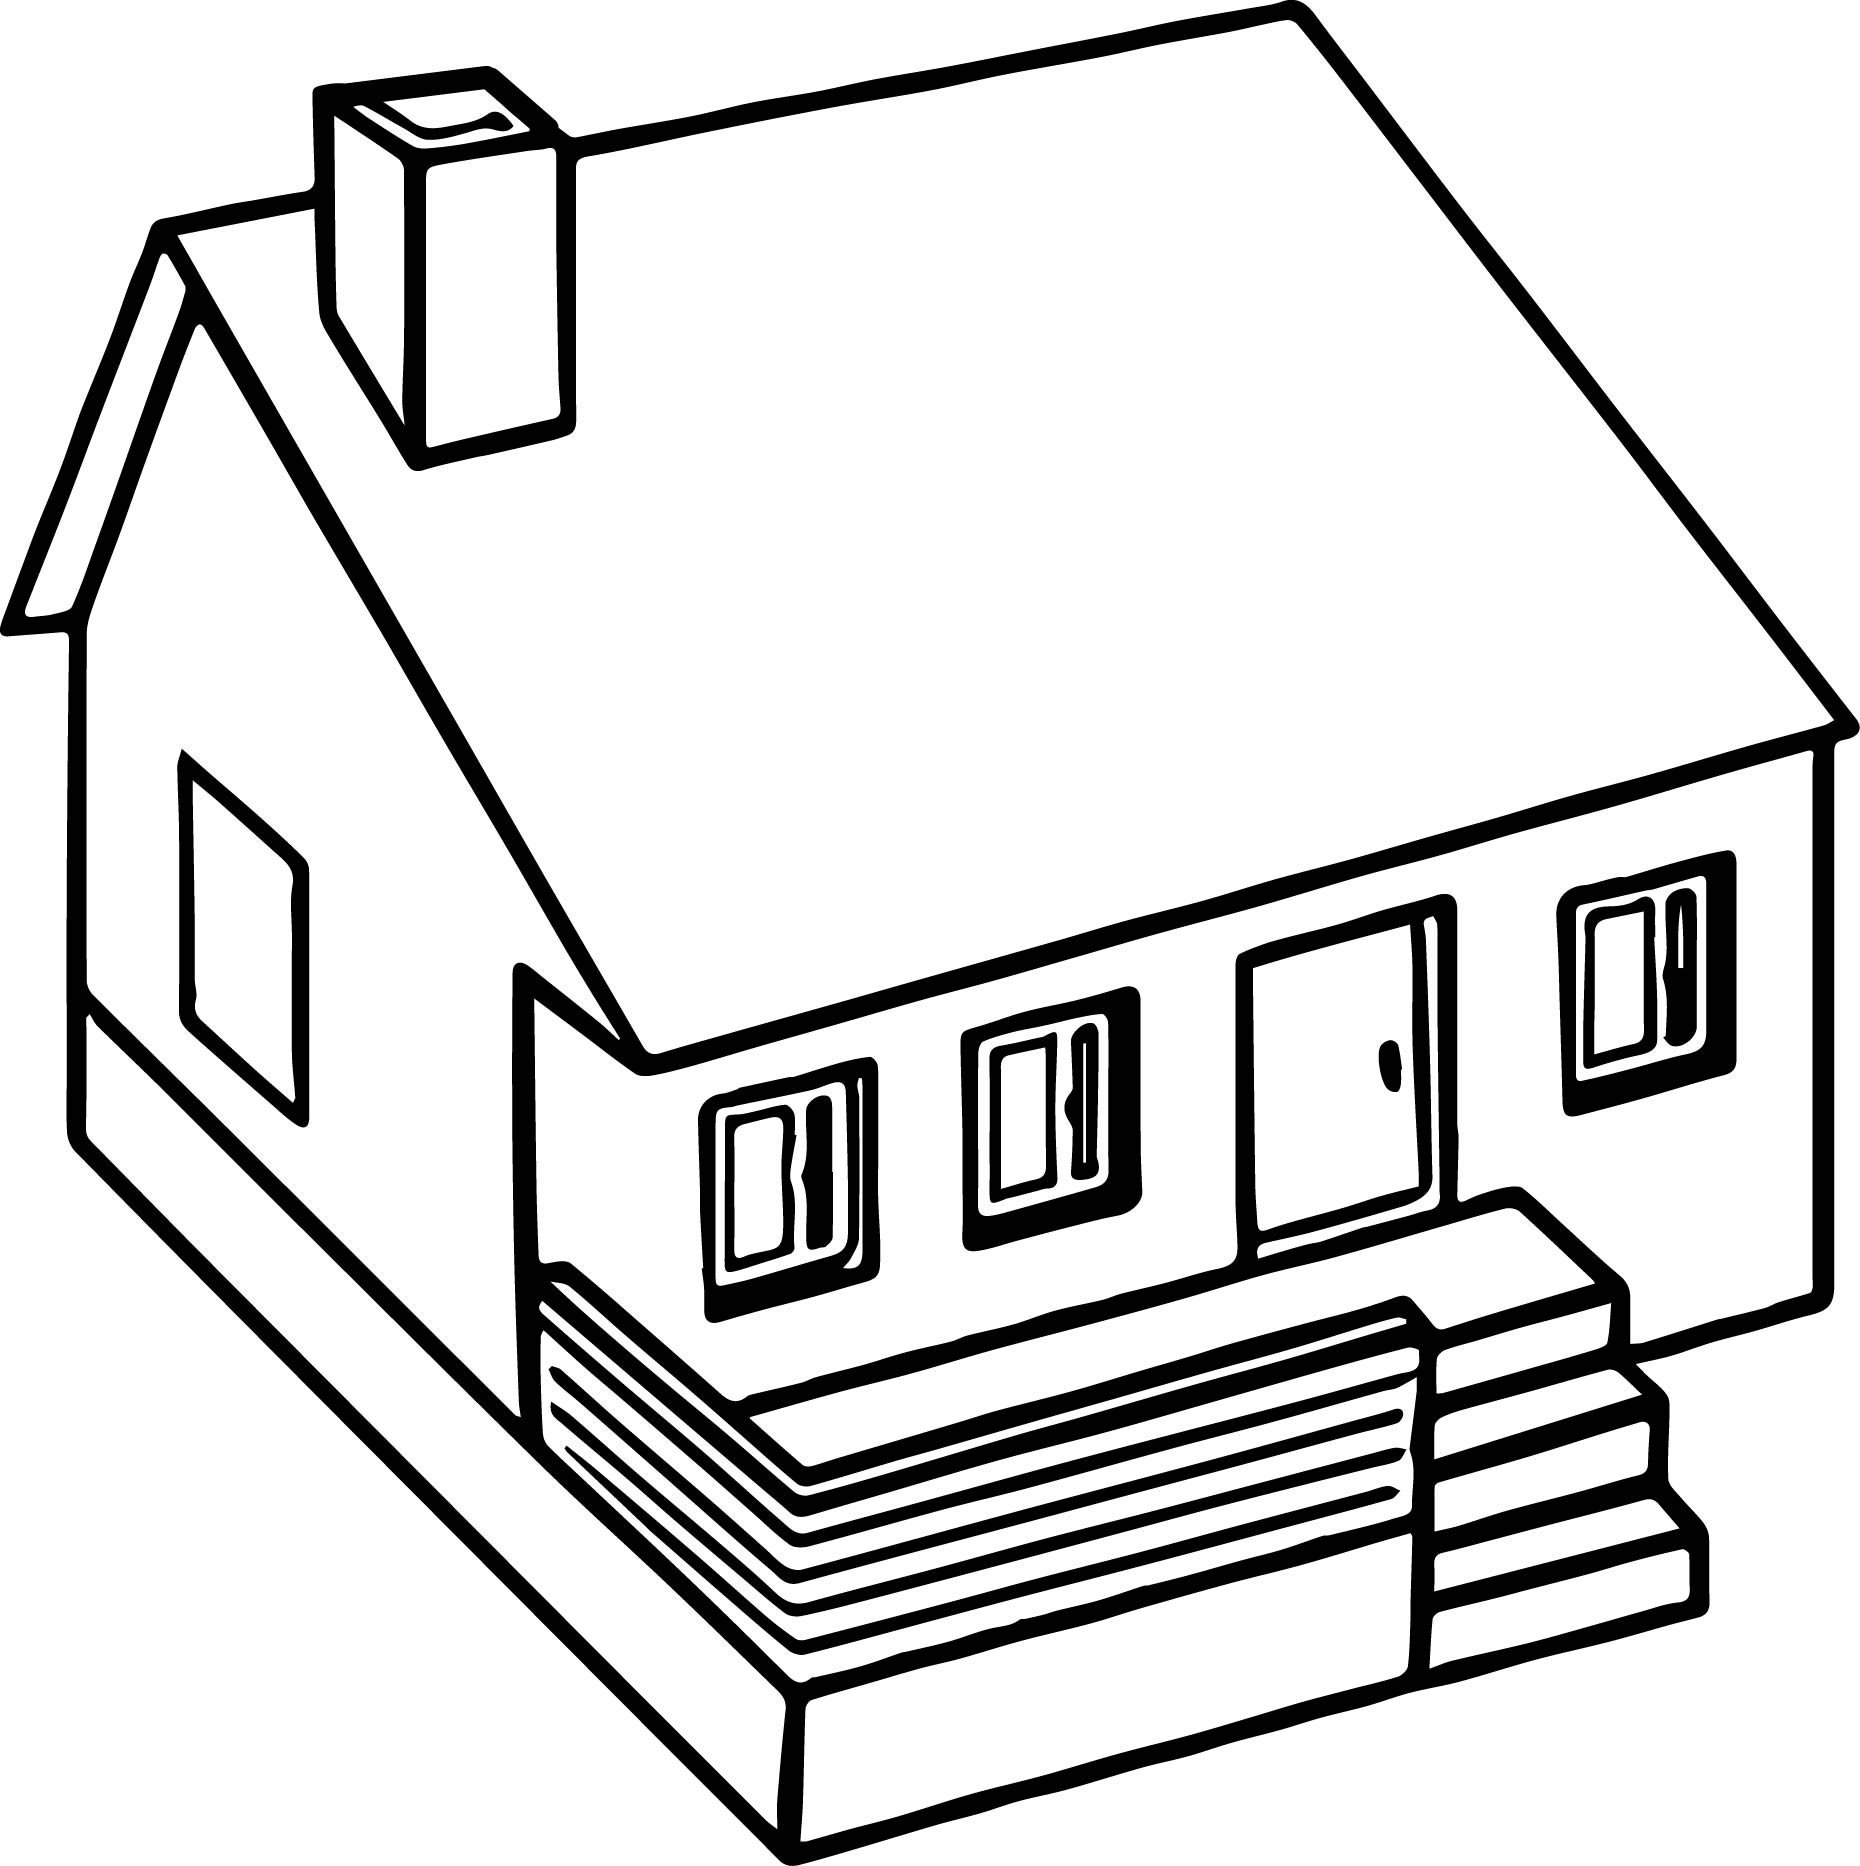 3d coloring pages - Cute 3d Home Coloring Page